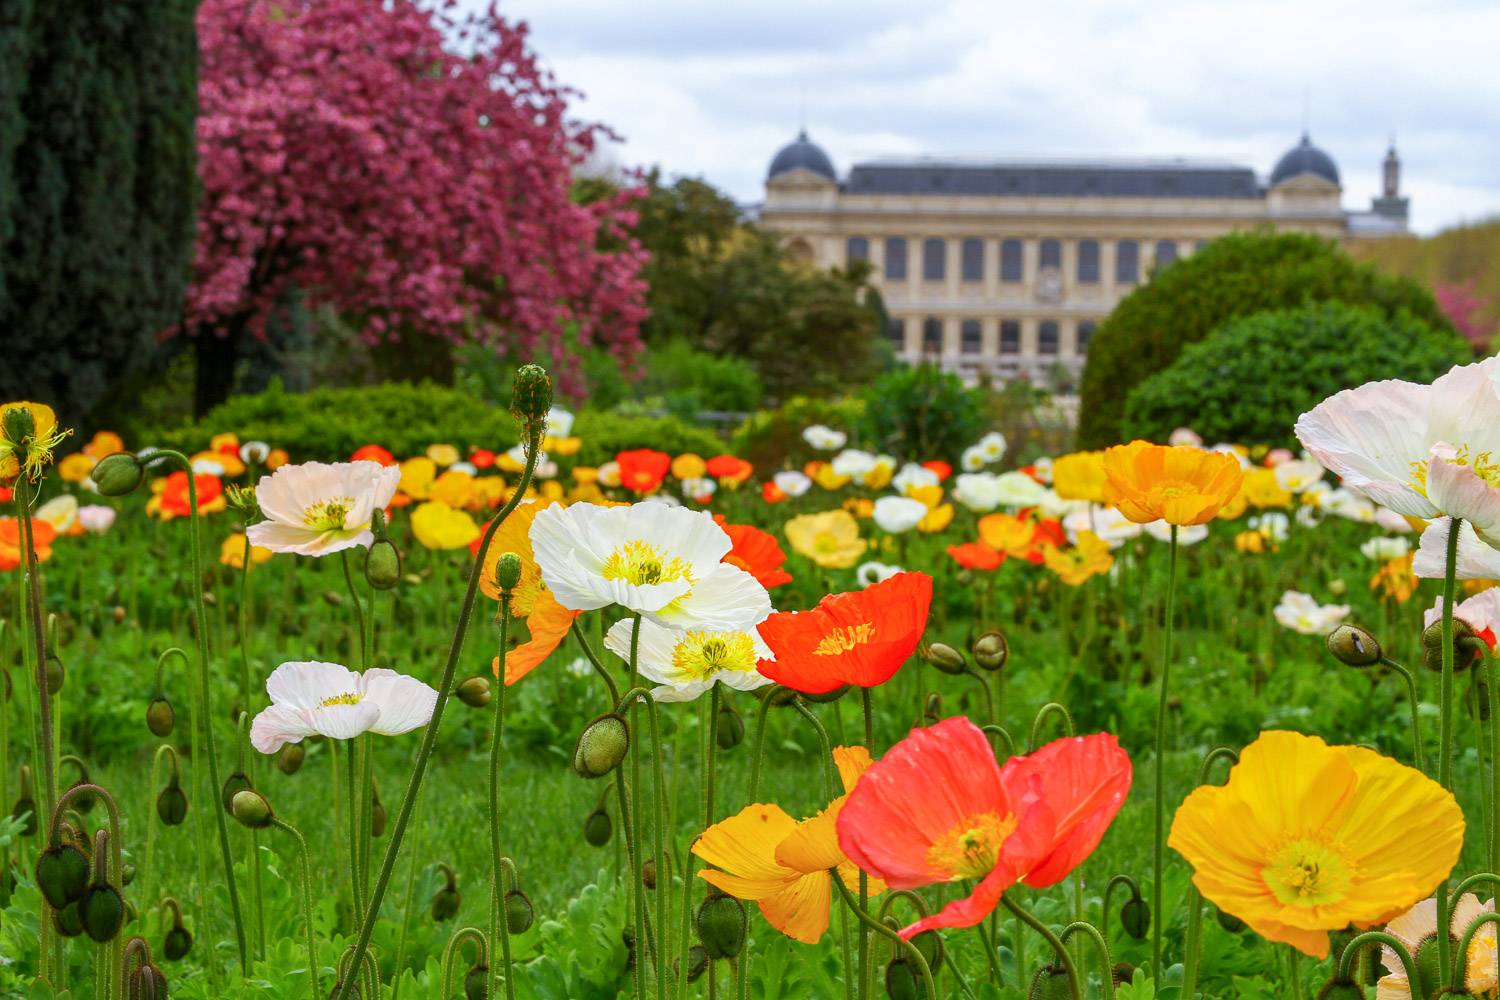 Flowers and trees in bloom at the Jardin des plantes in Paris, with the Grande Galerie de L'Evolution in the background.